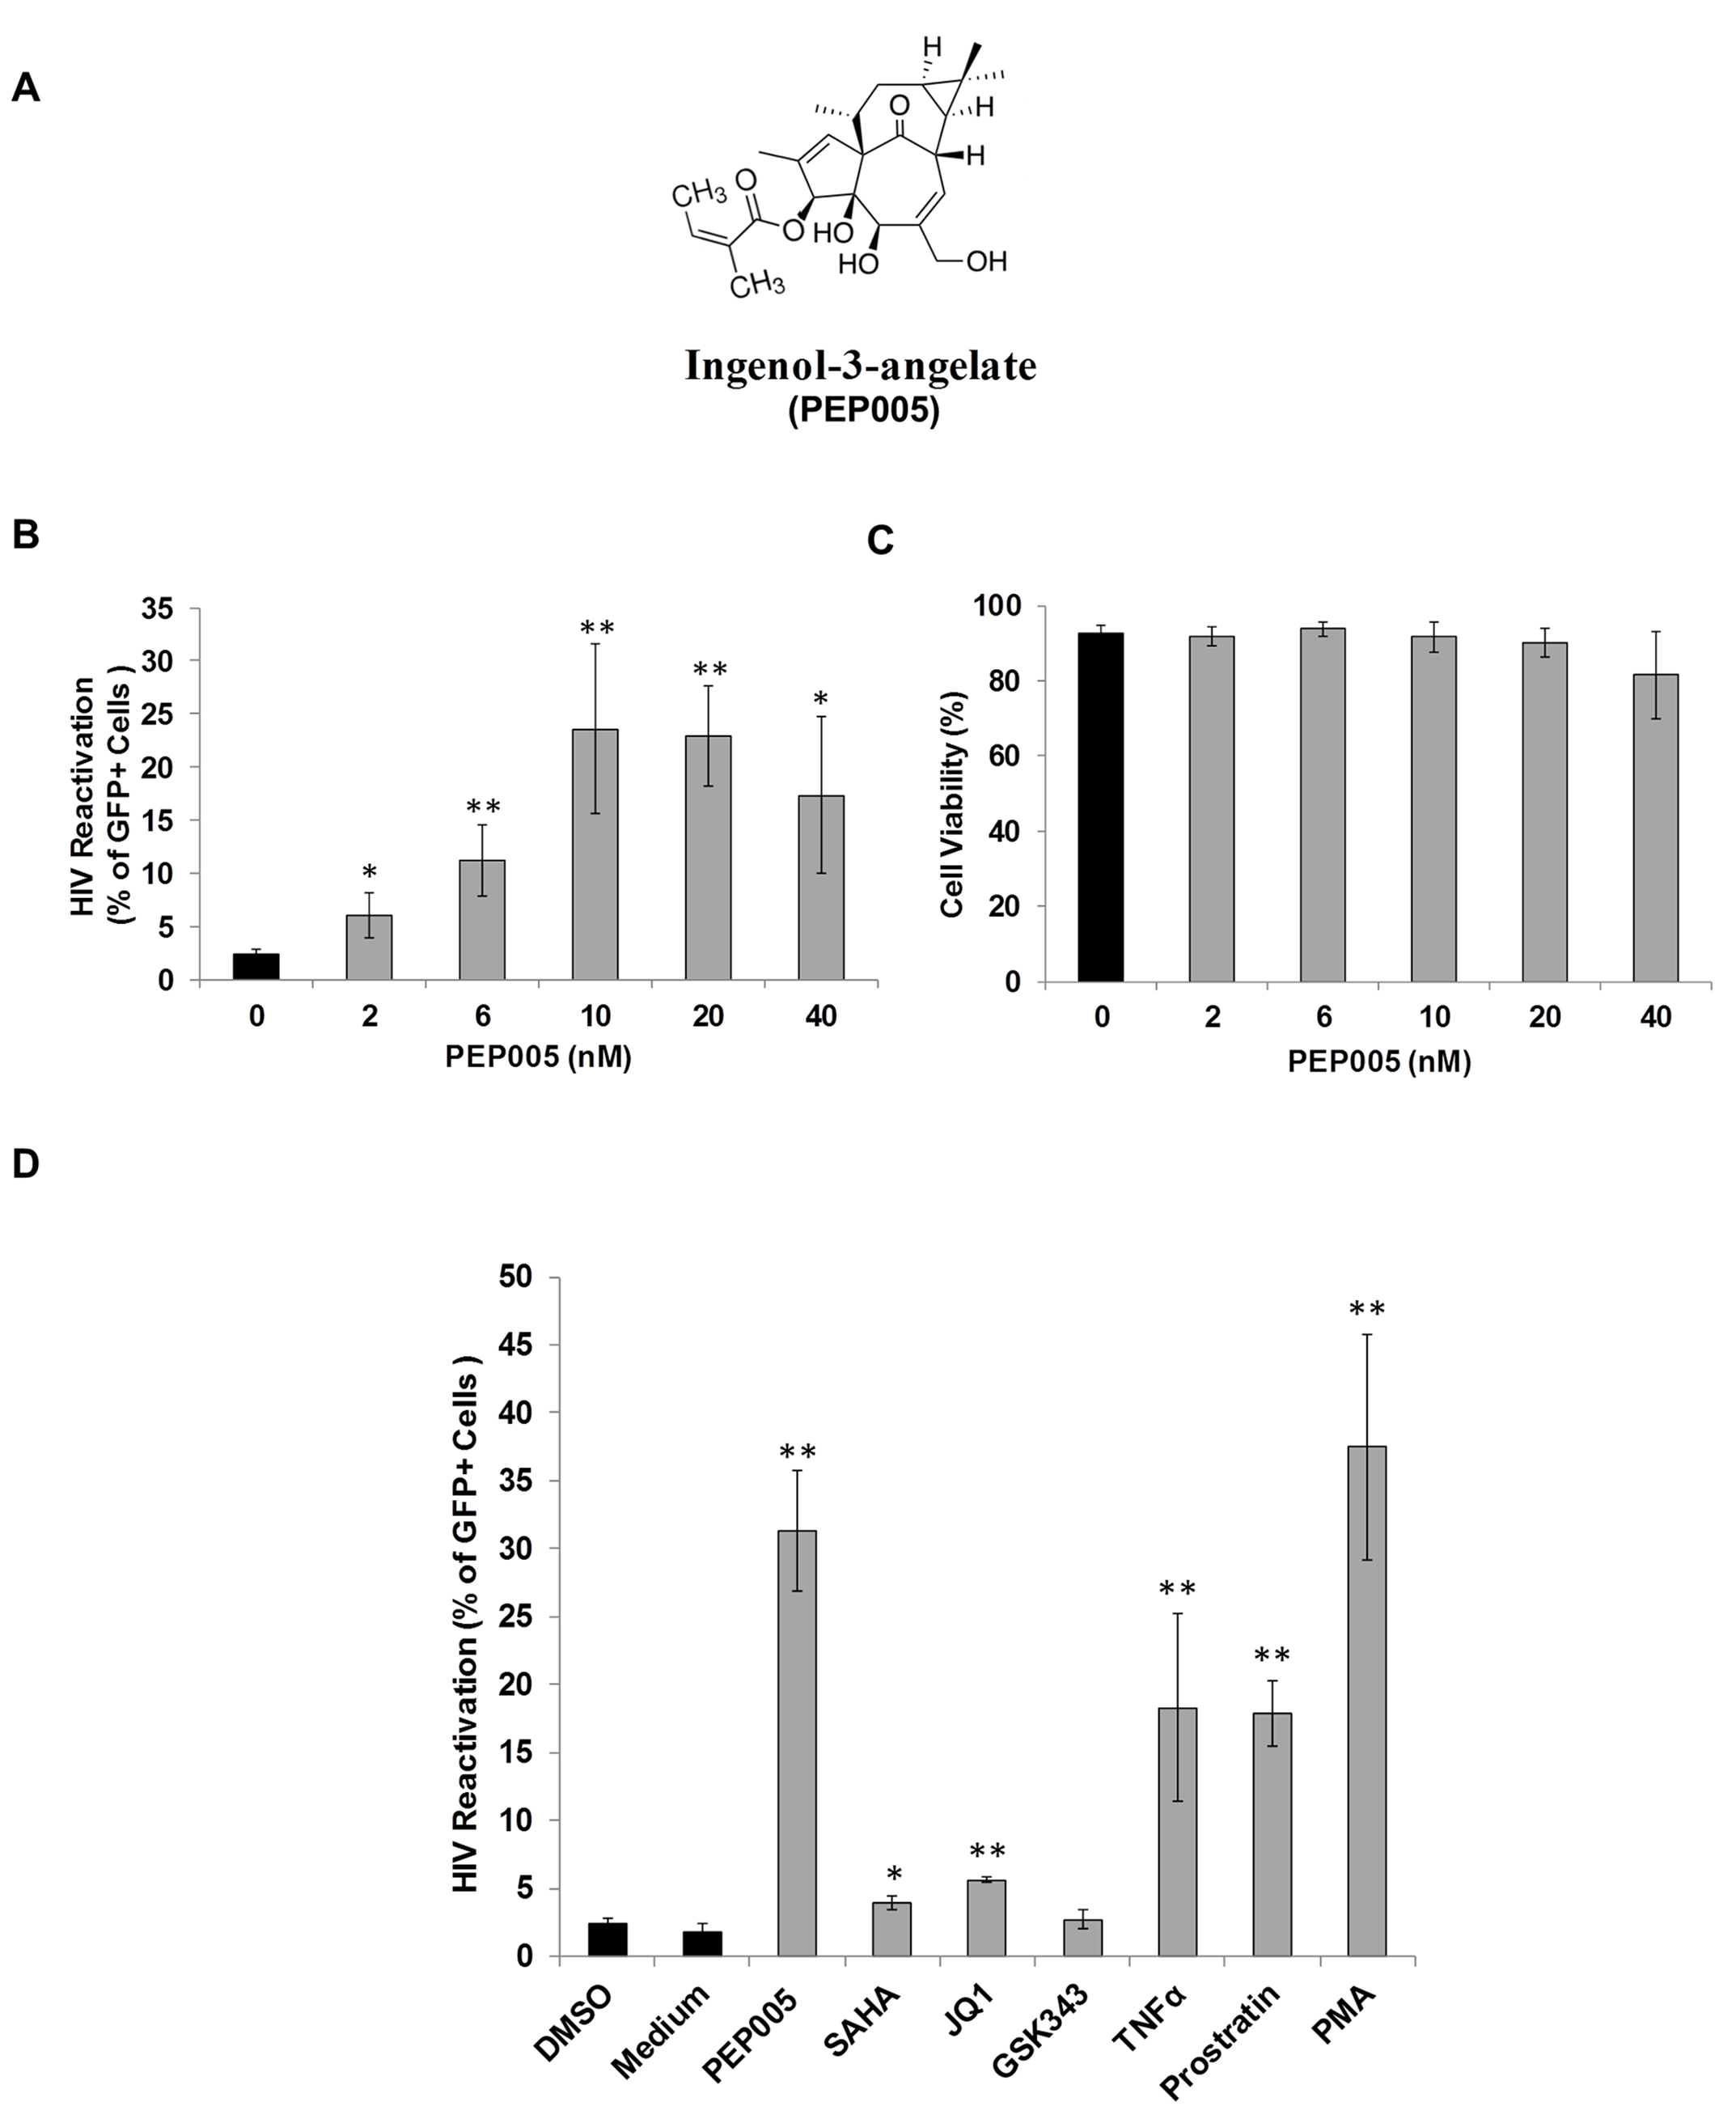 PEP005 induces reactivation of HIV latency <i>in vitro</i>.